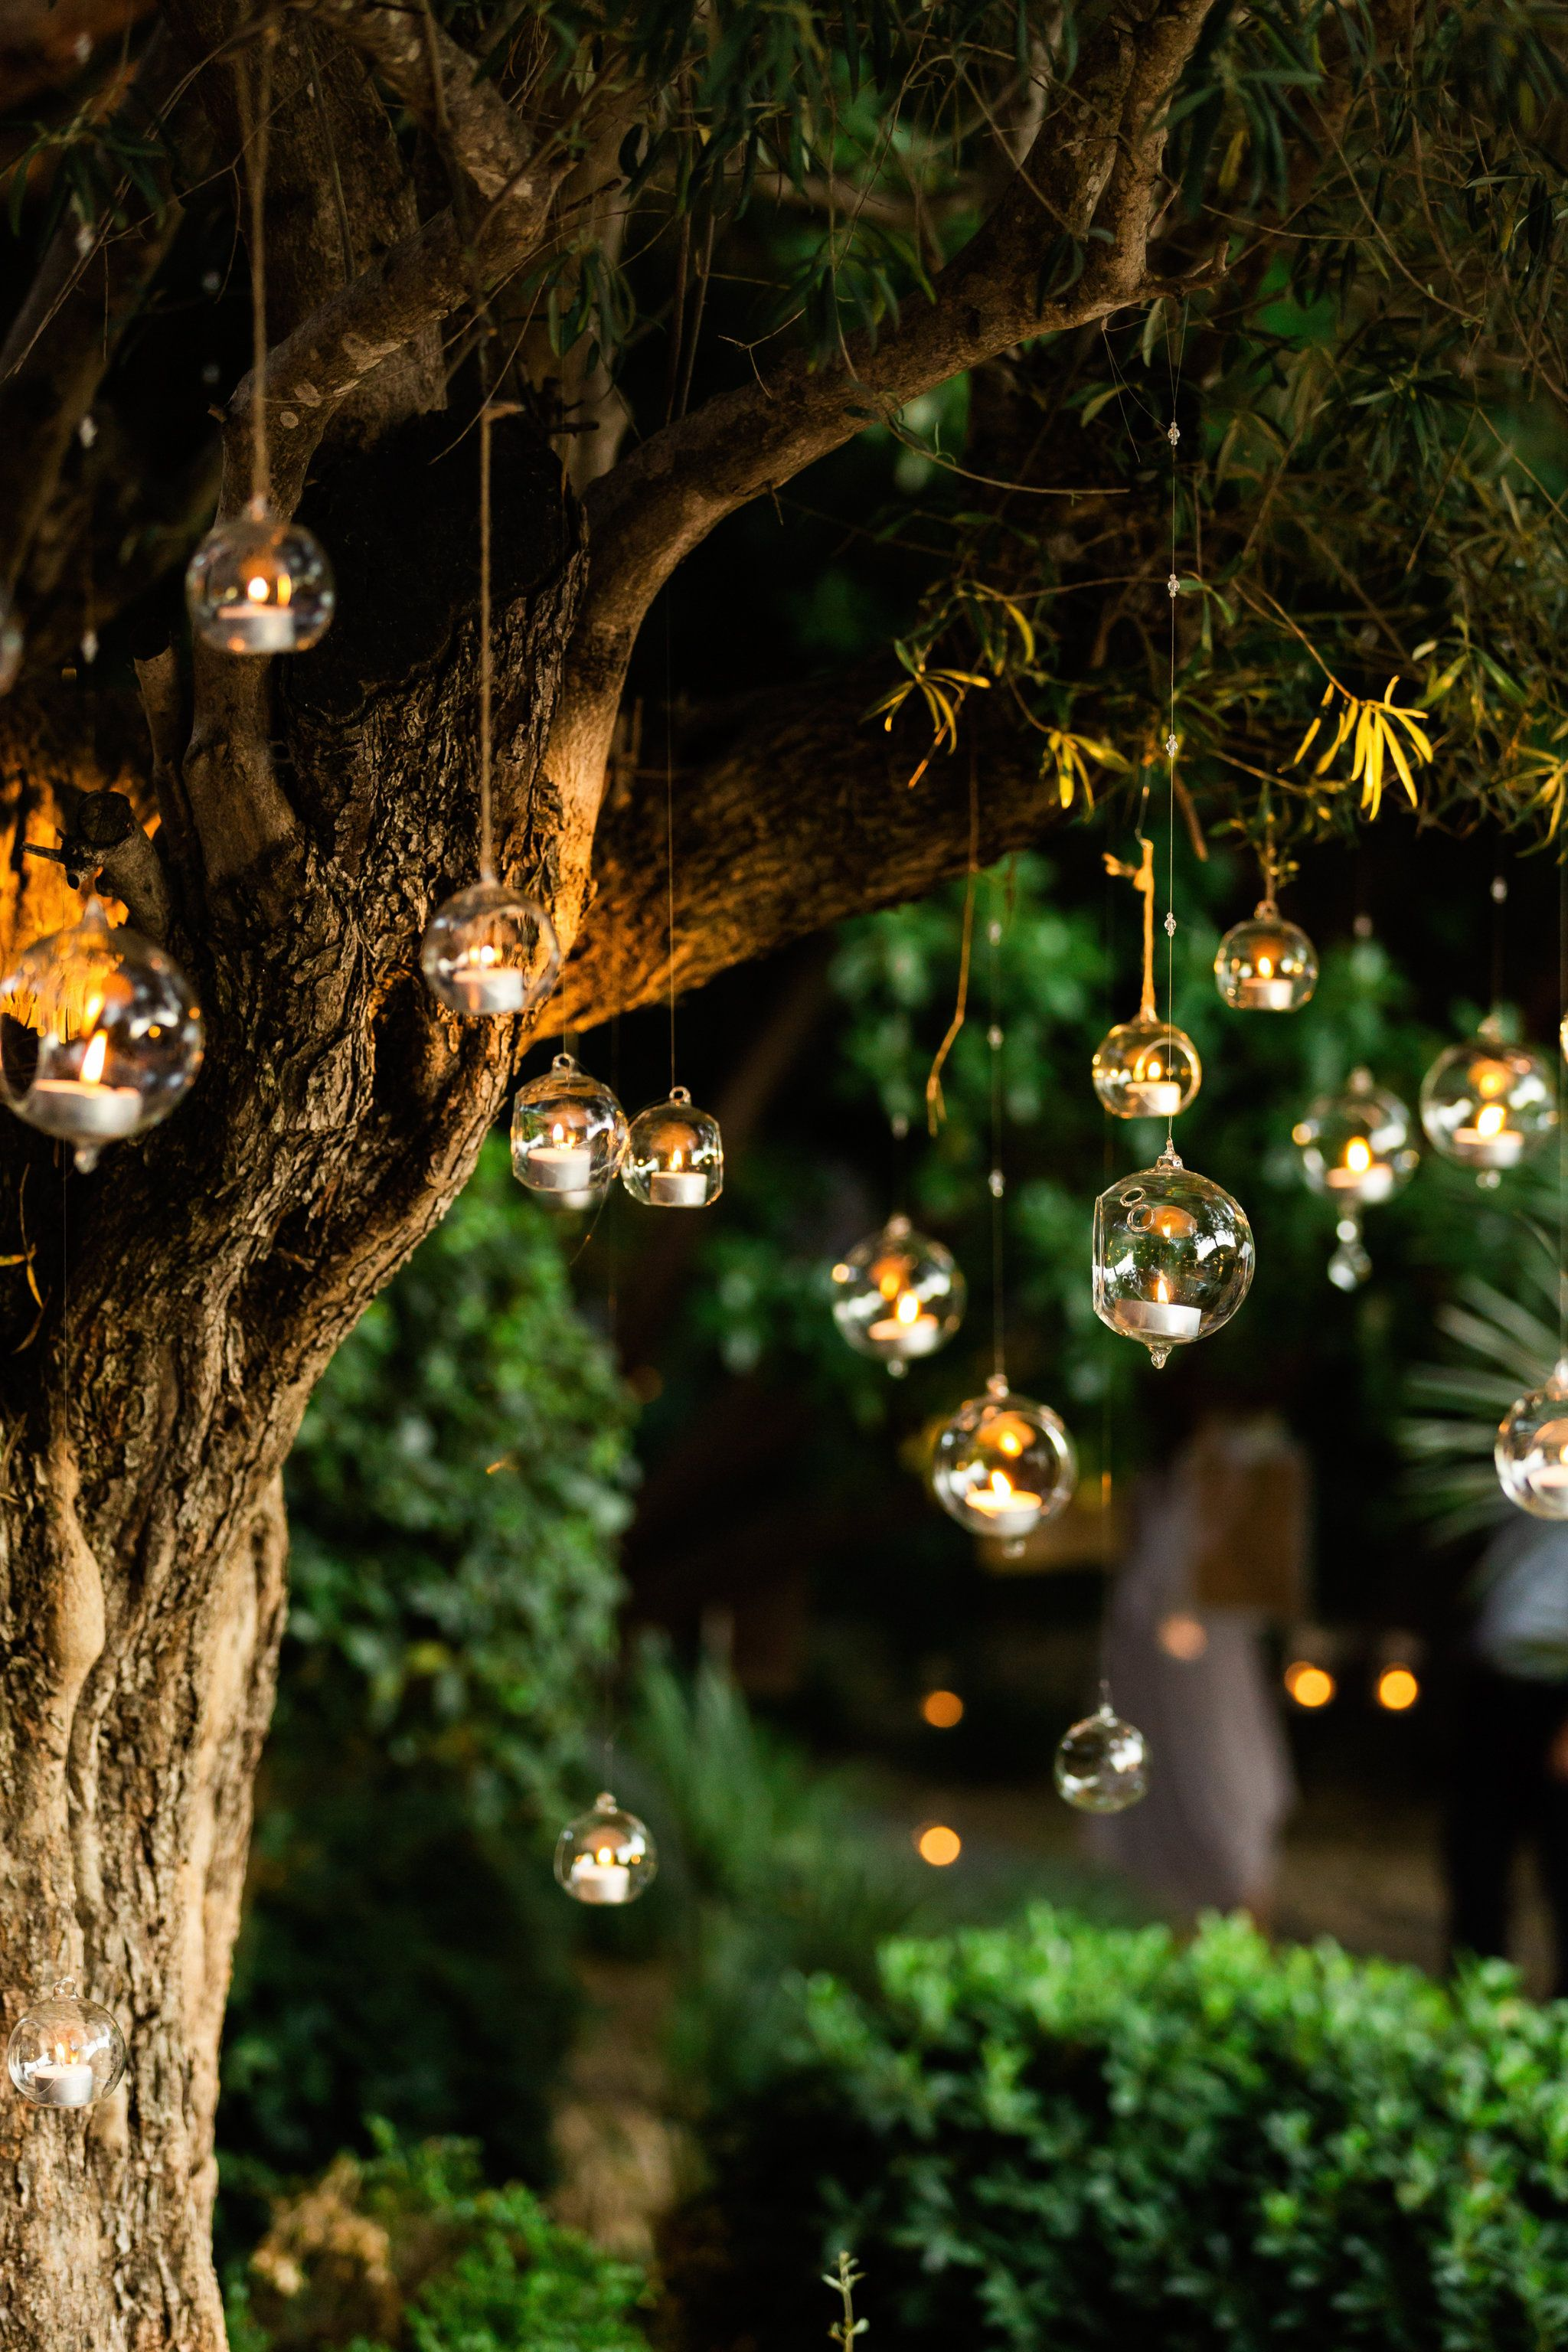 Pin By C C On Ae Lights It S Never Too Much Christmas Lights Wallpaper Beautiful Flowers Wallpapers Photography Wallpaper